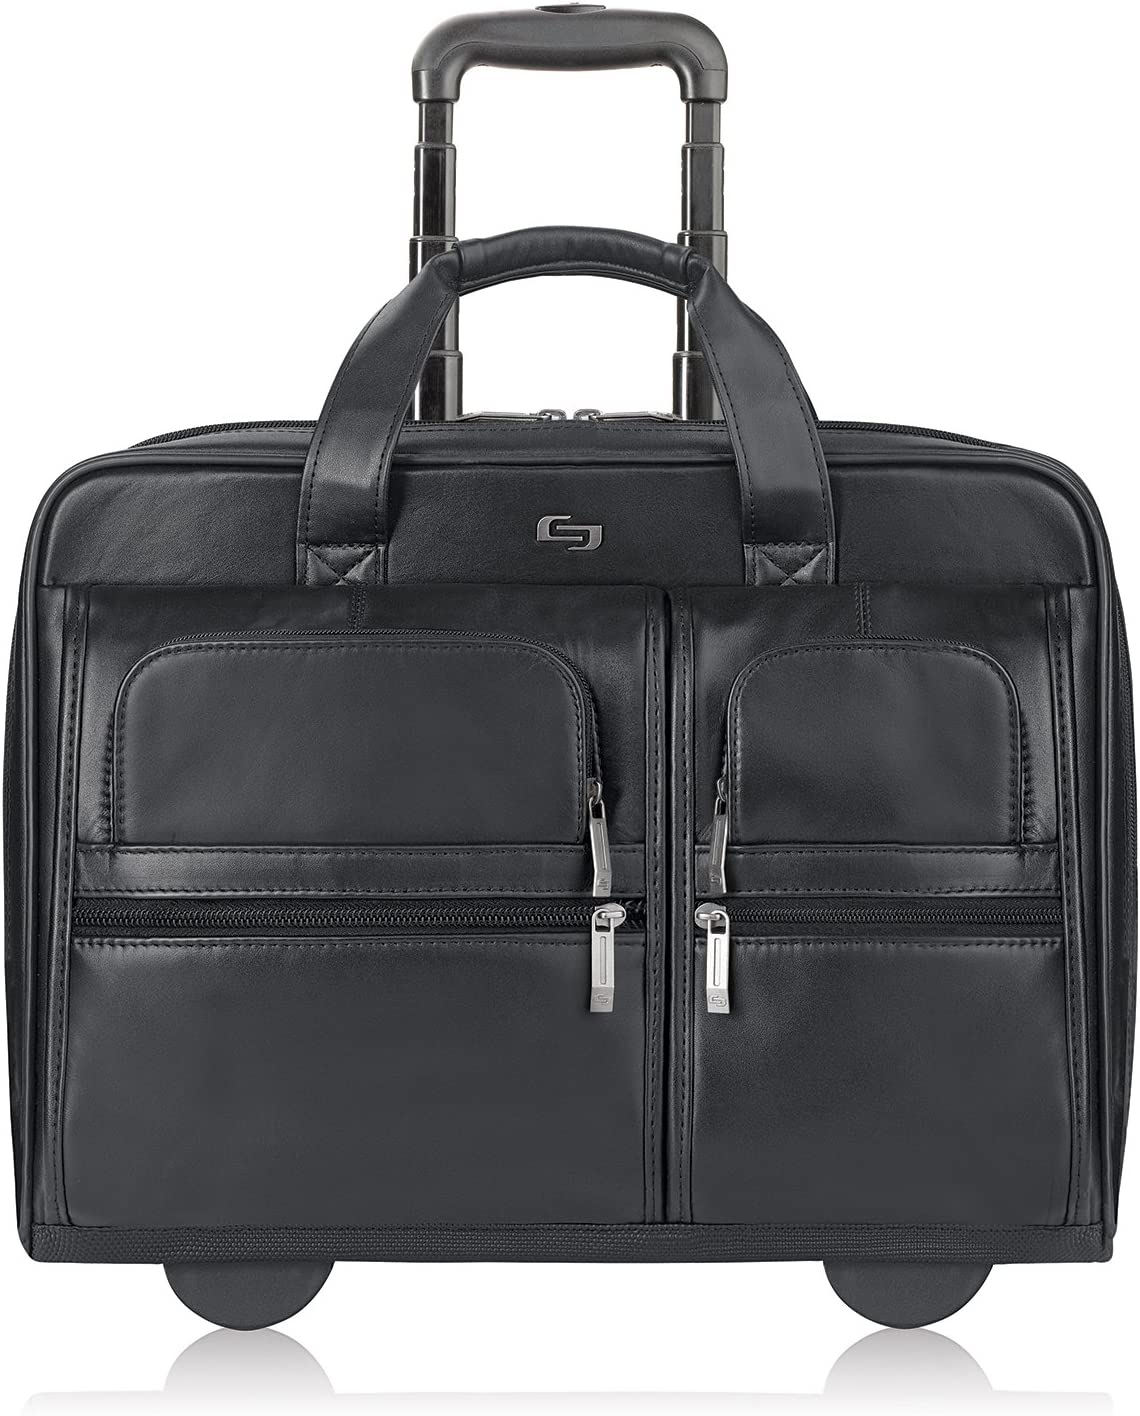 Solo New York D957-4, Black, 15.6""